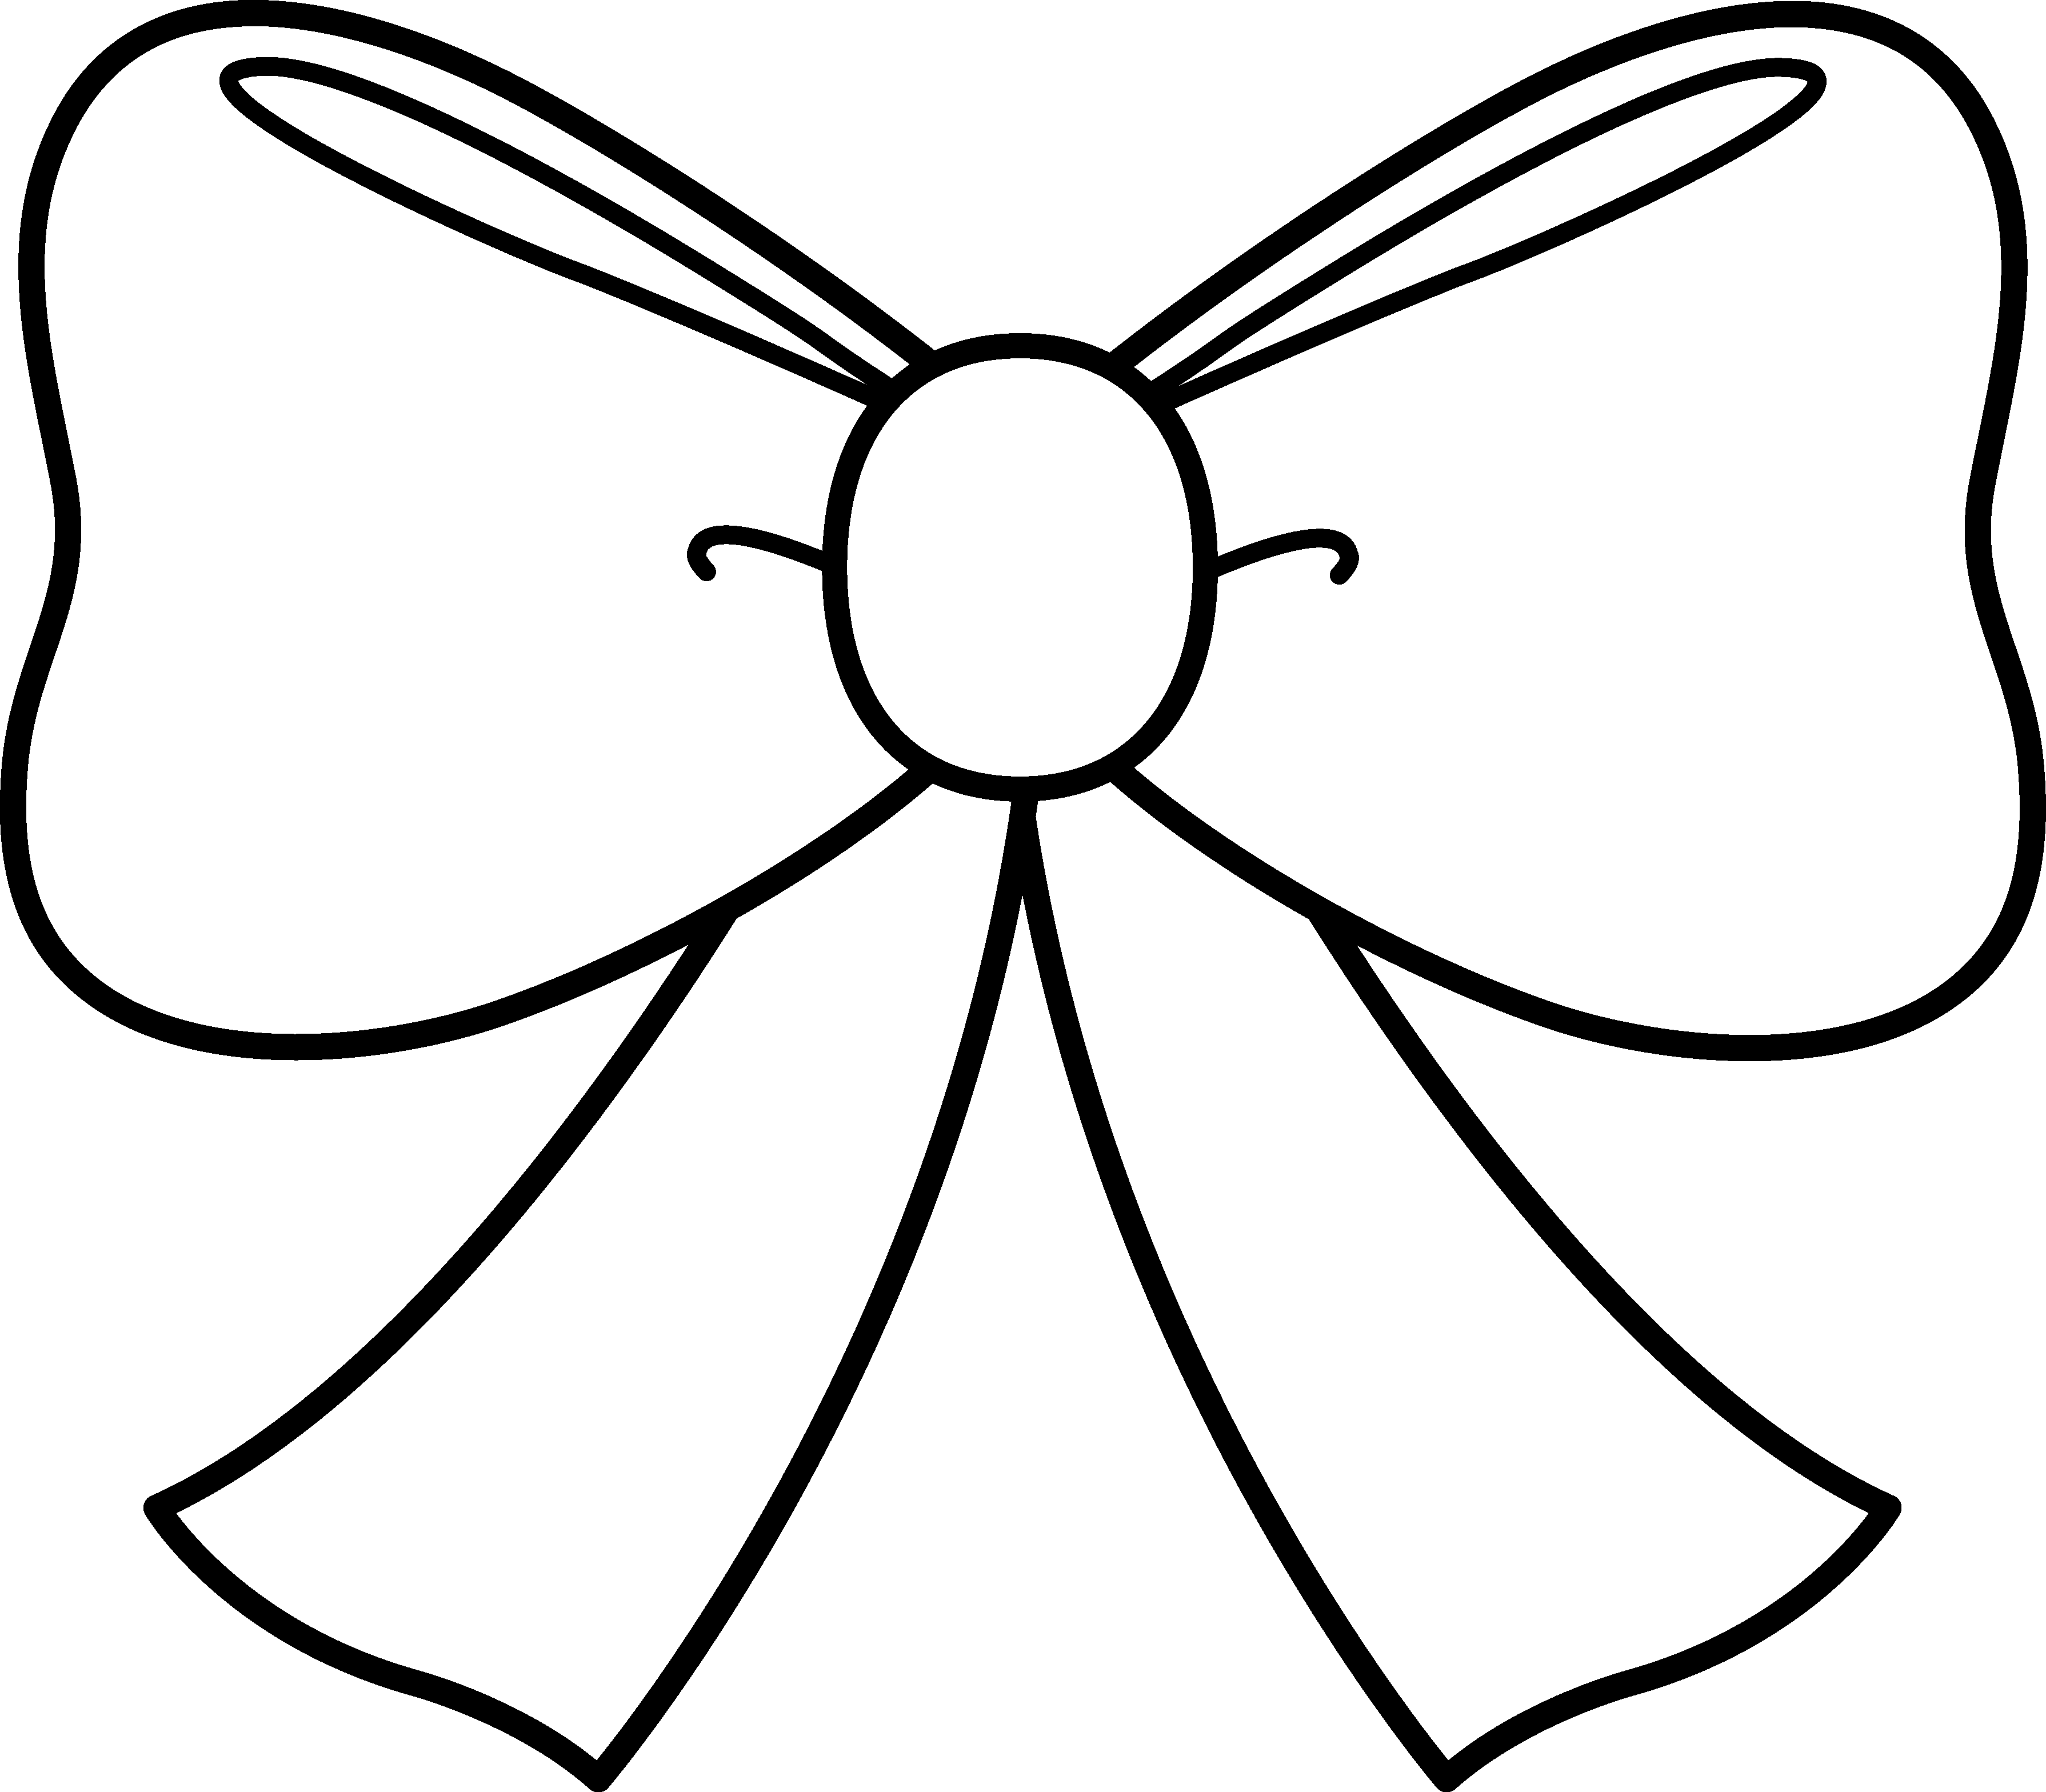 Cute Bow PNG HD-PlusPNG.com-3580 - Cute Bow PNG HD